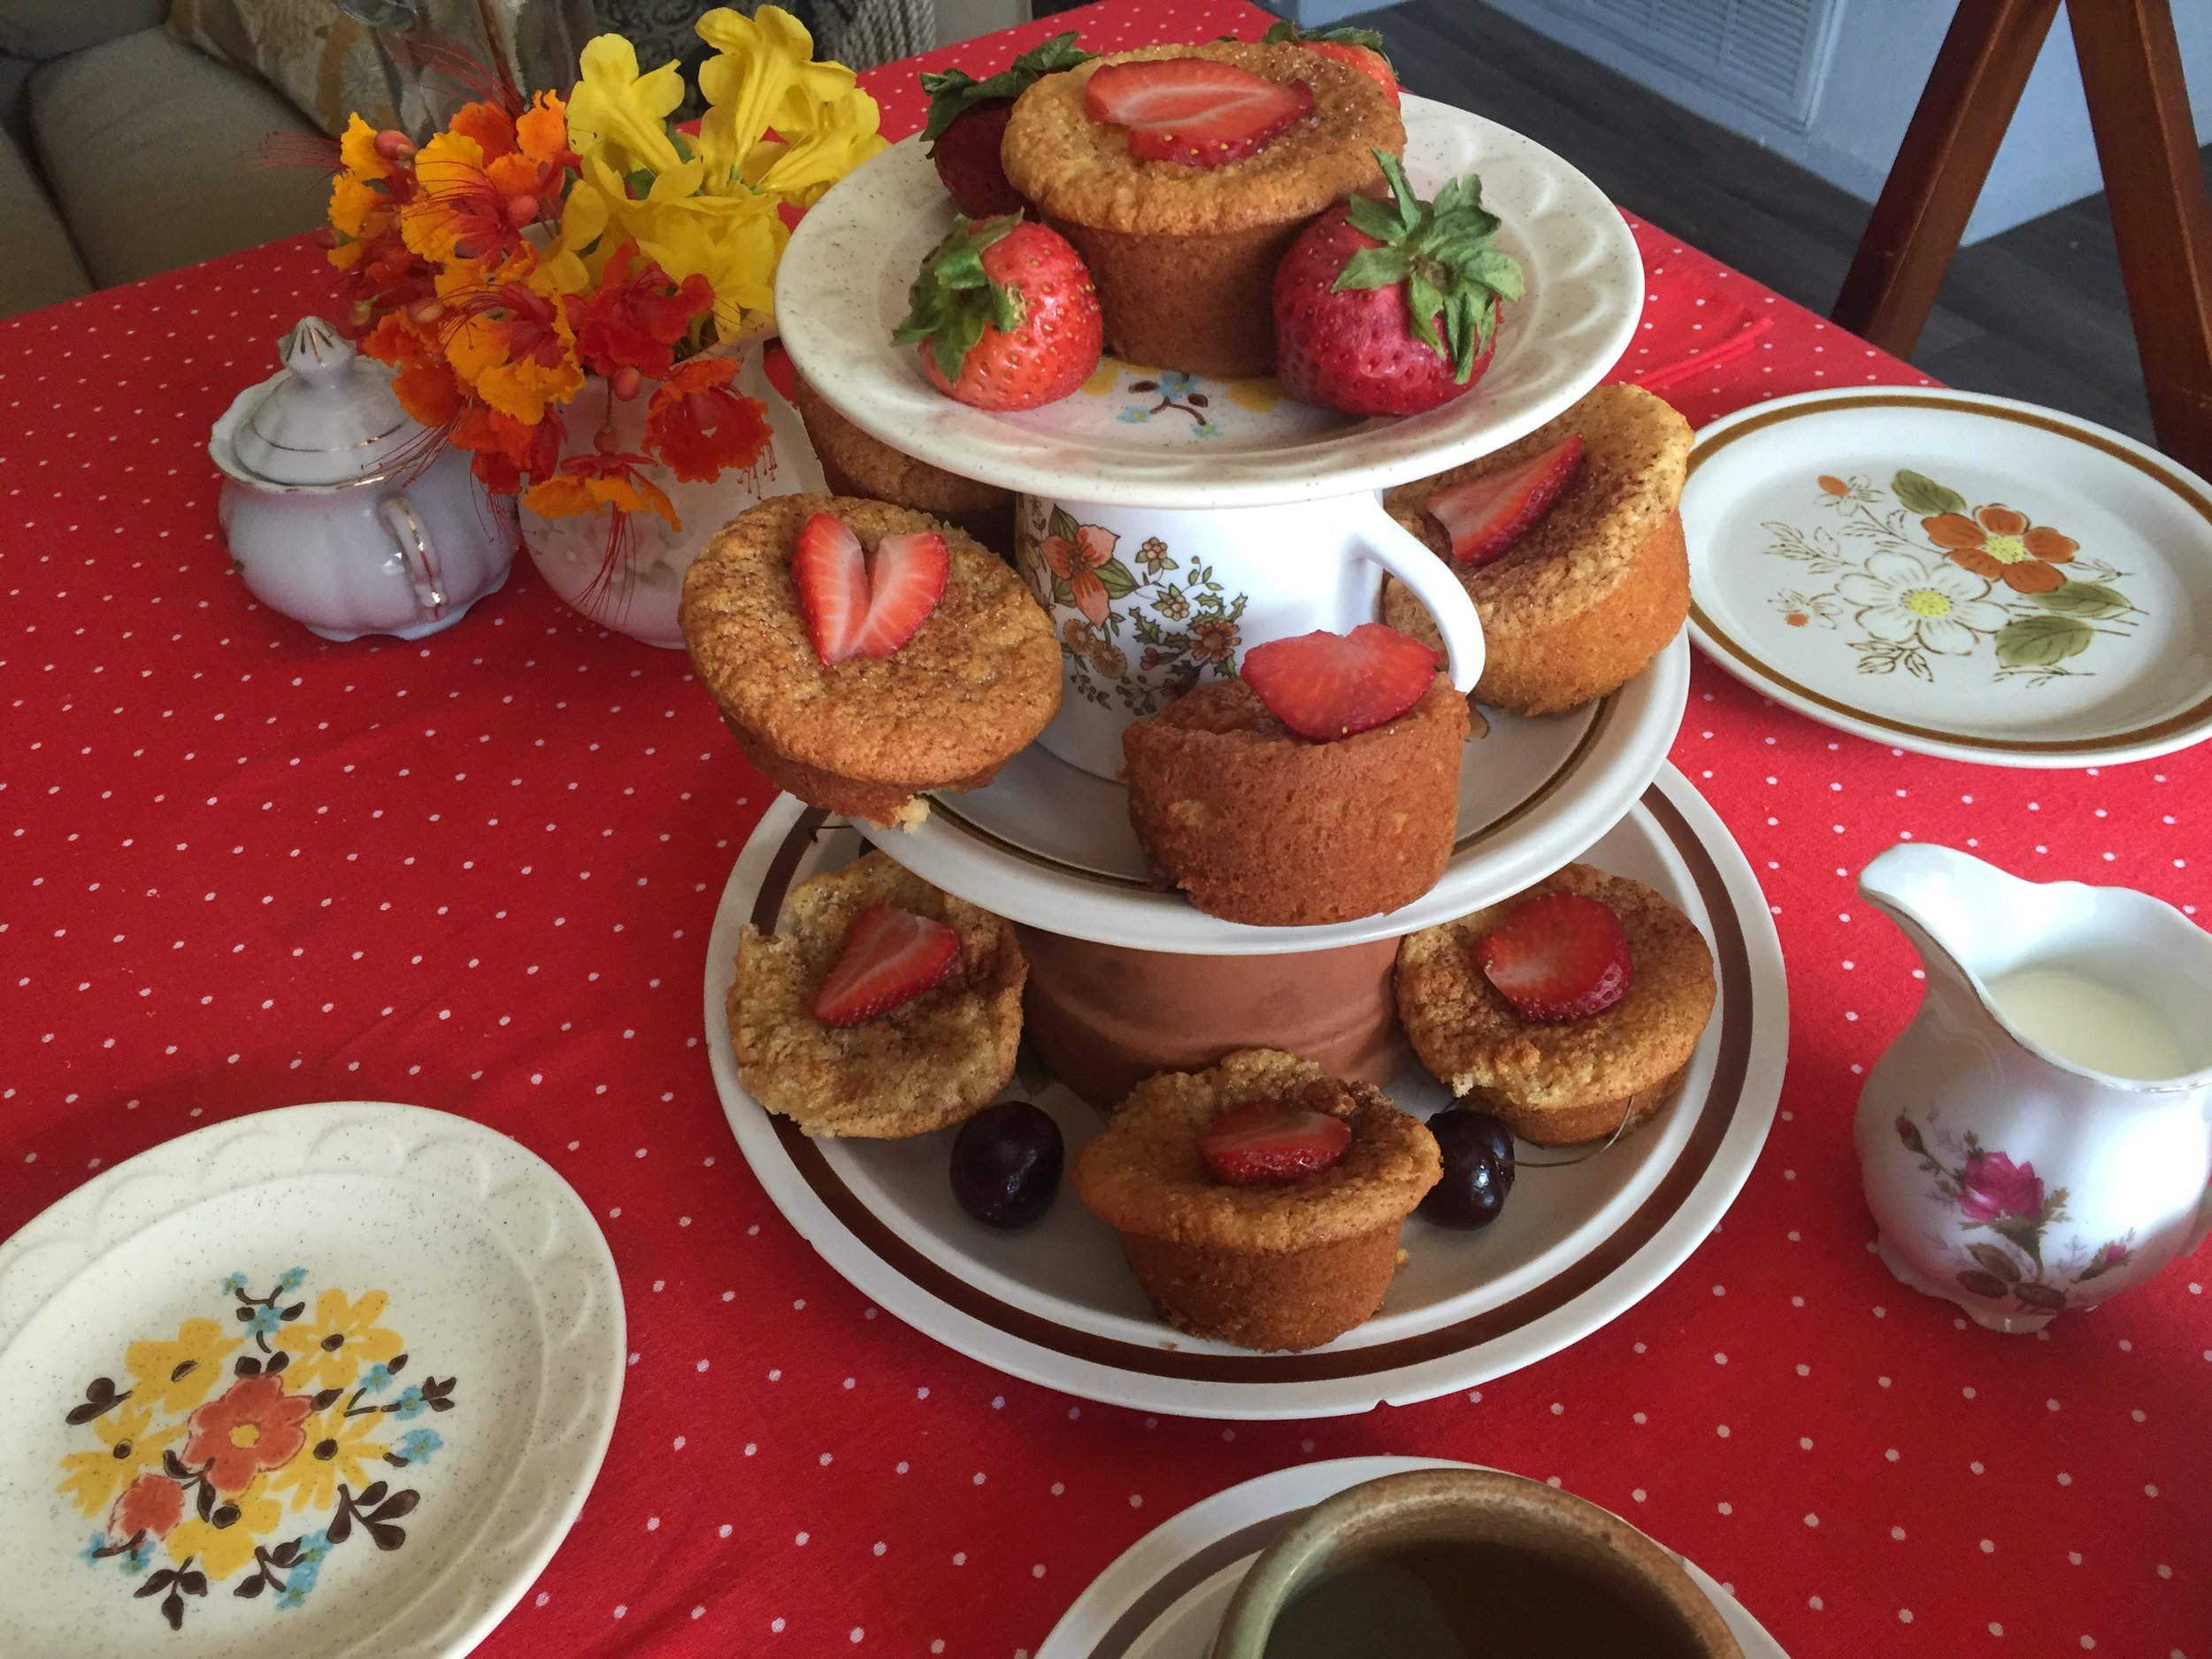 Cupcake town with gluten-free cupcakes and strawberries